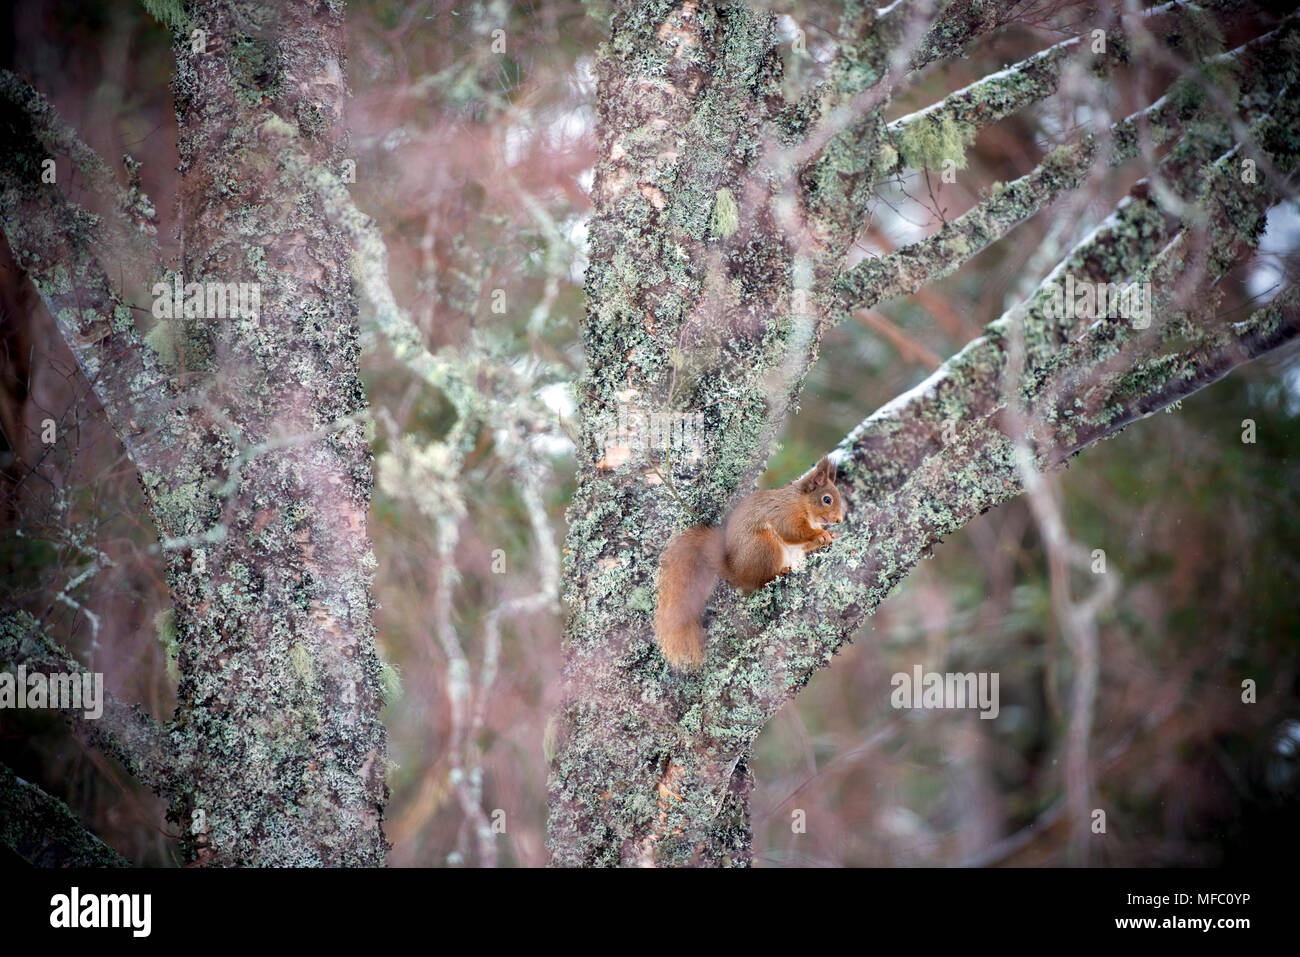 A red squirrel after a snow storm in the Glenmore forest near Aviemore in the Cairngorms national park in Scotland Stock Photo